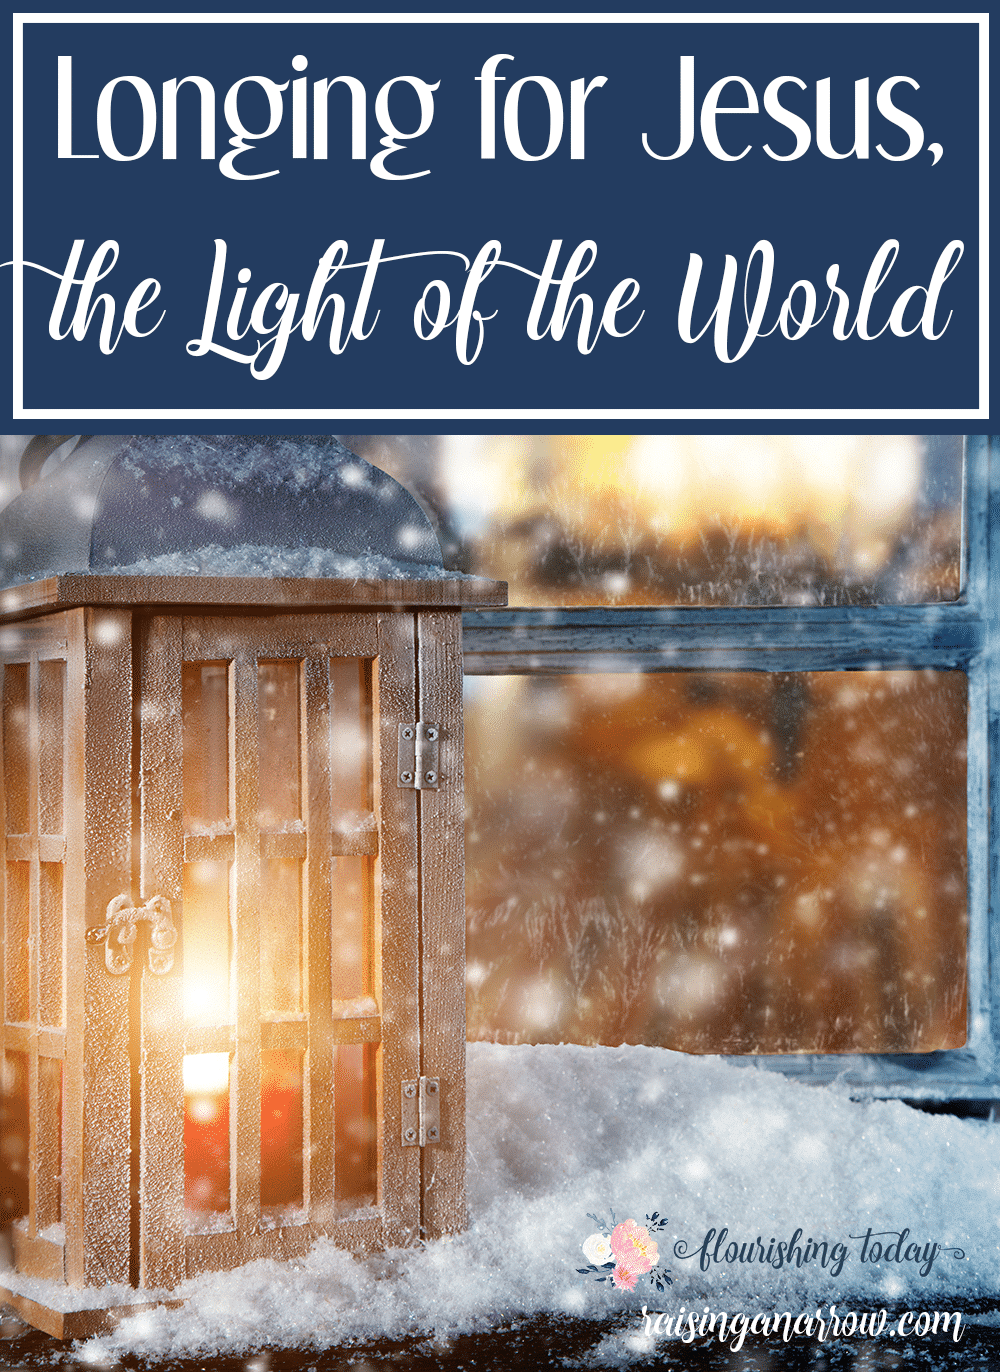 Are you in a dark place right now? Jesus, the Light of the World is there waiting for you. All you have to do is call out to Him